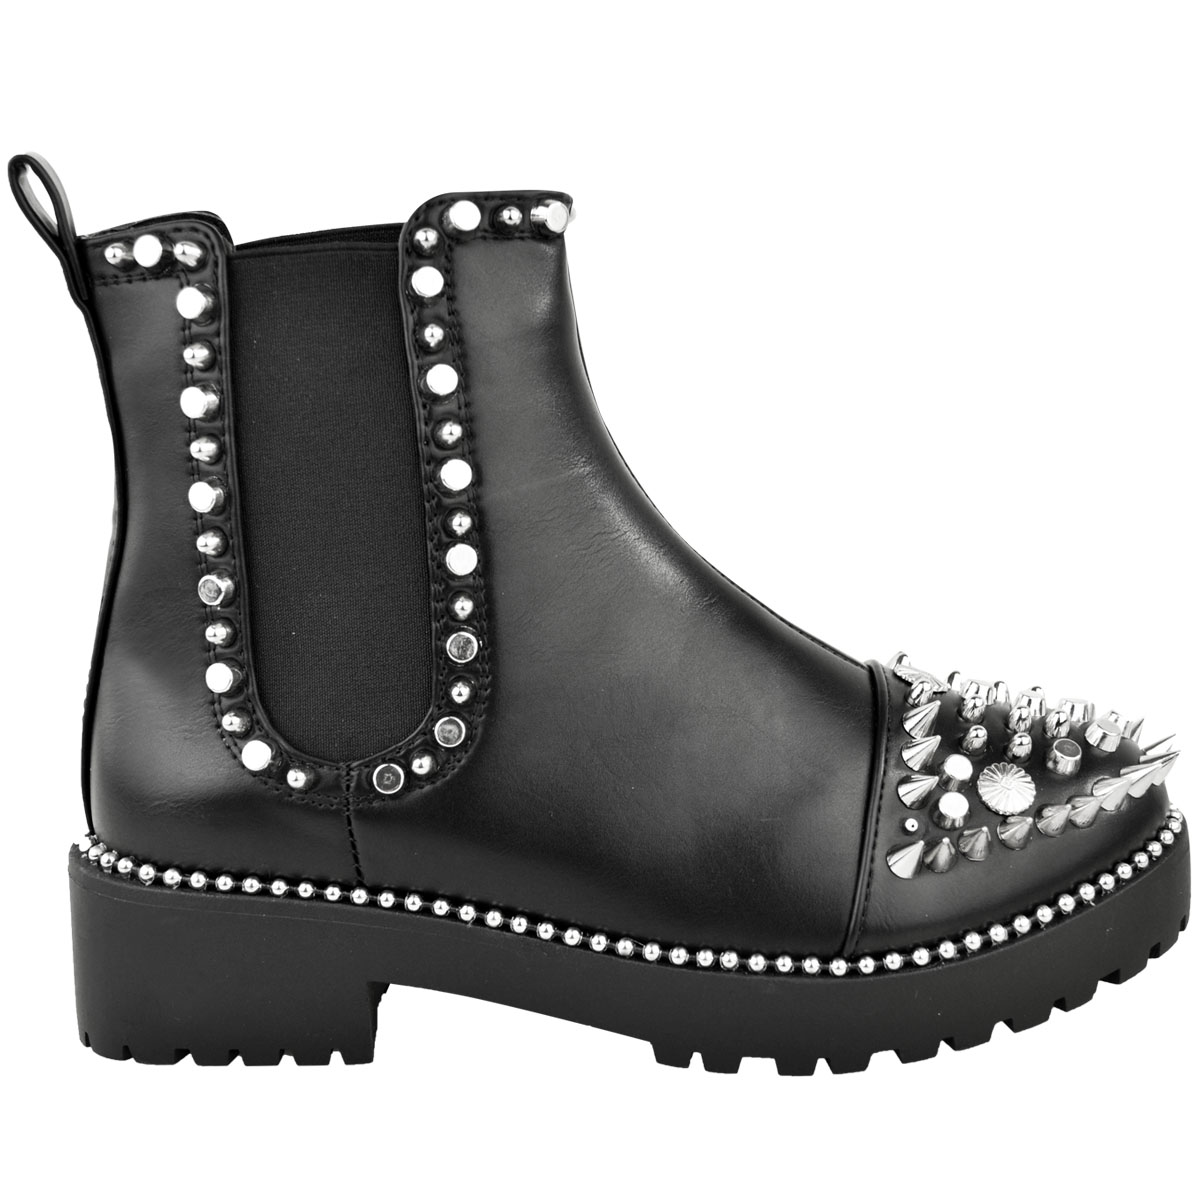 Womens-Ladies-Black-Flat-Winter-Ankle-Boots-Studded-Grunge-Pull-On-Chunky-Size thumbnail 3